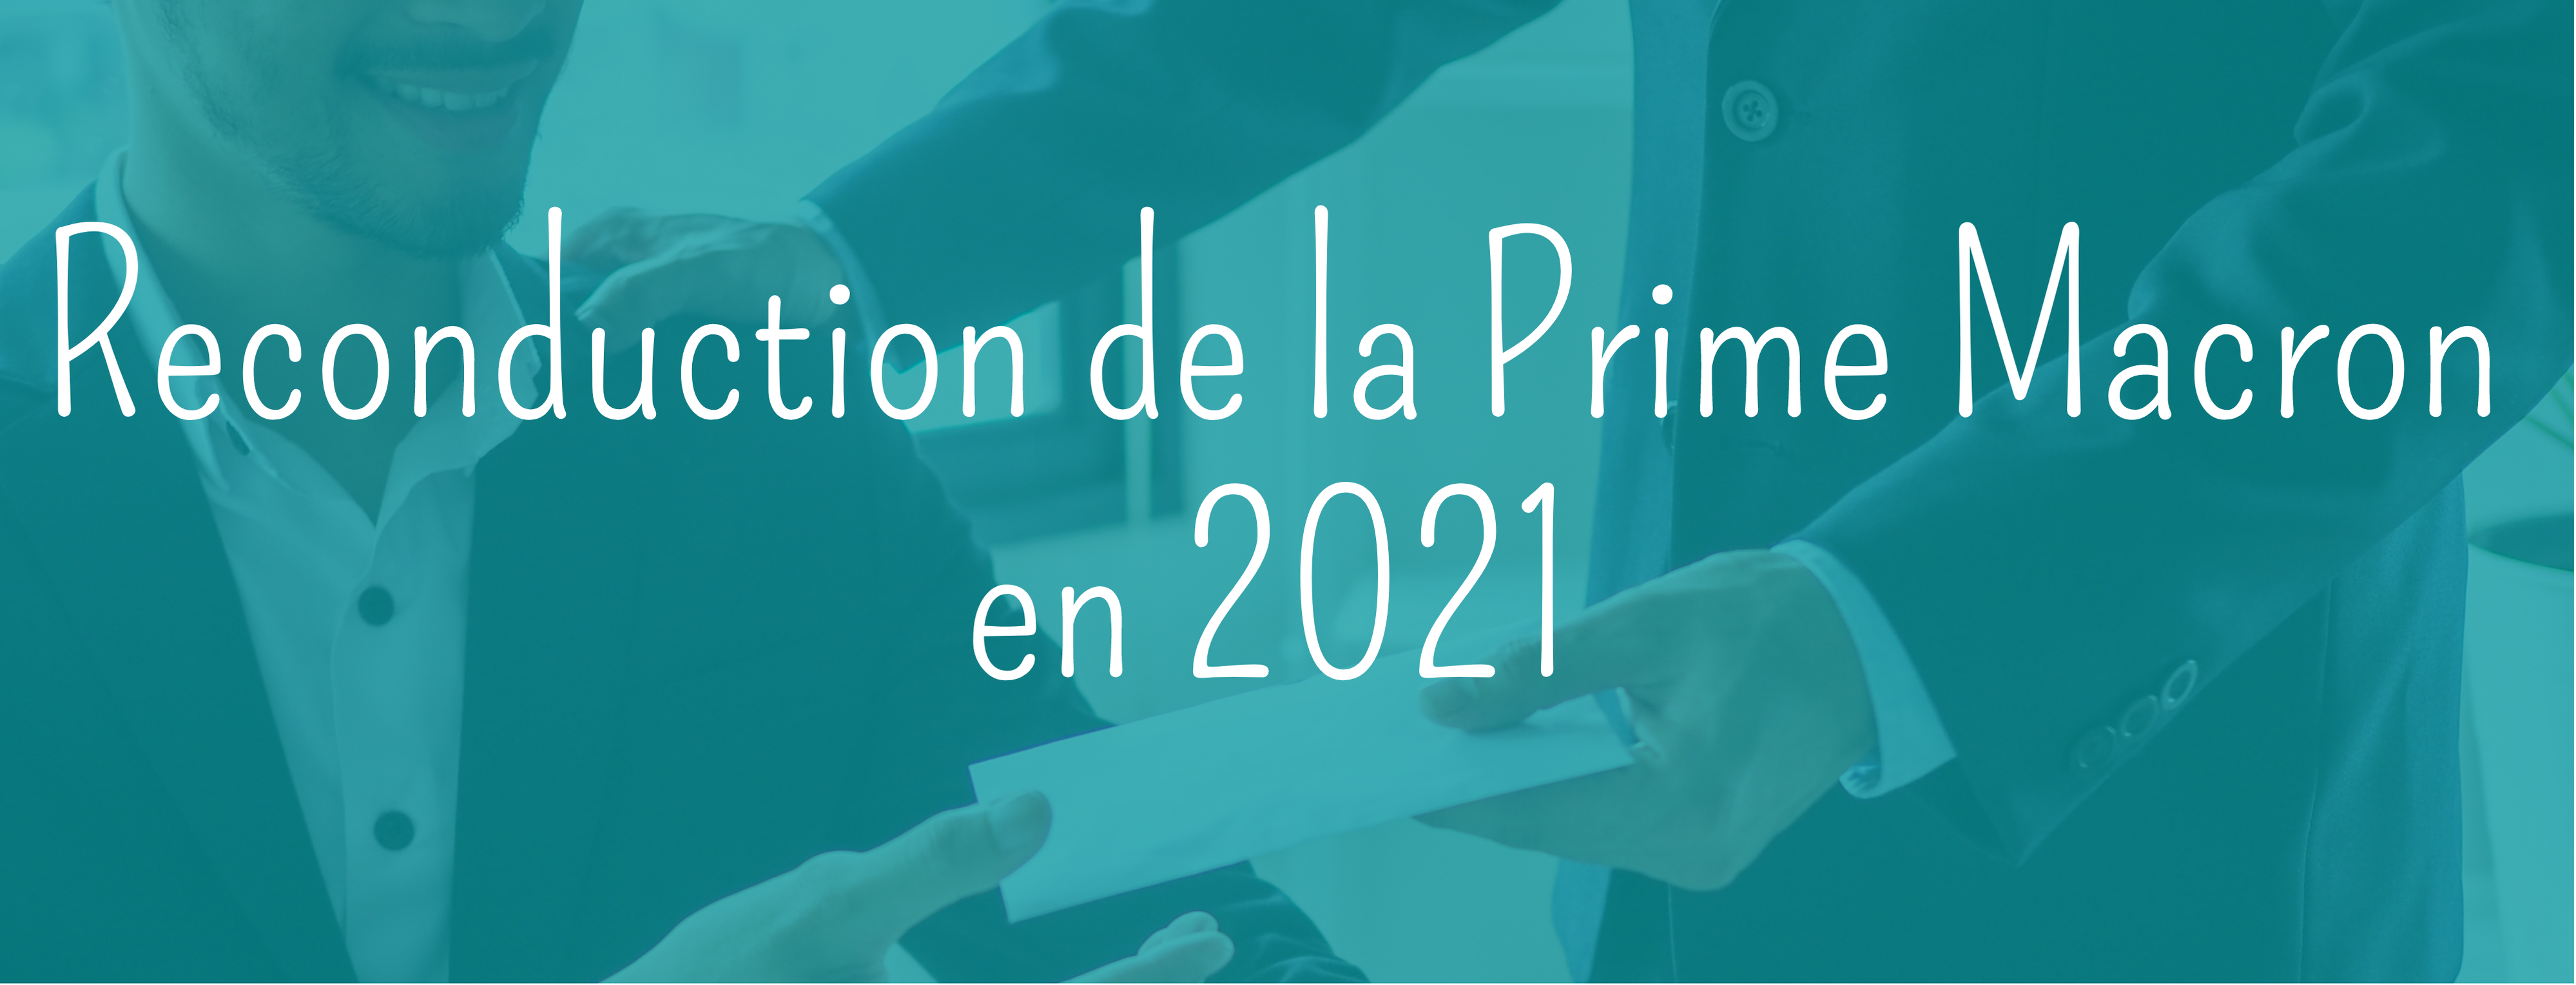 Reconduction de la Prime Macron en 2021